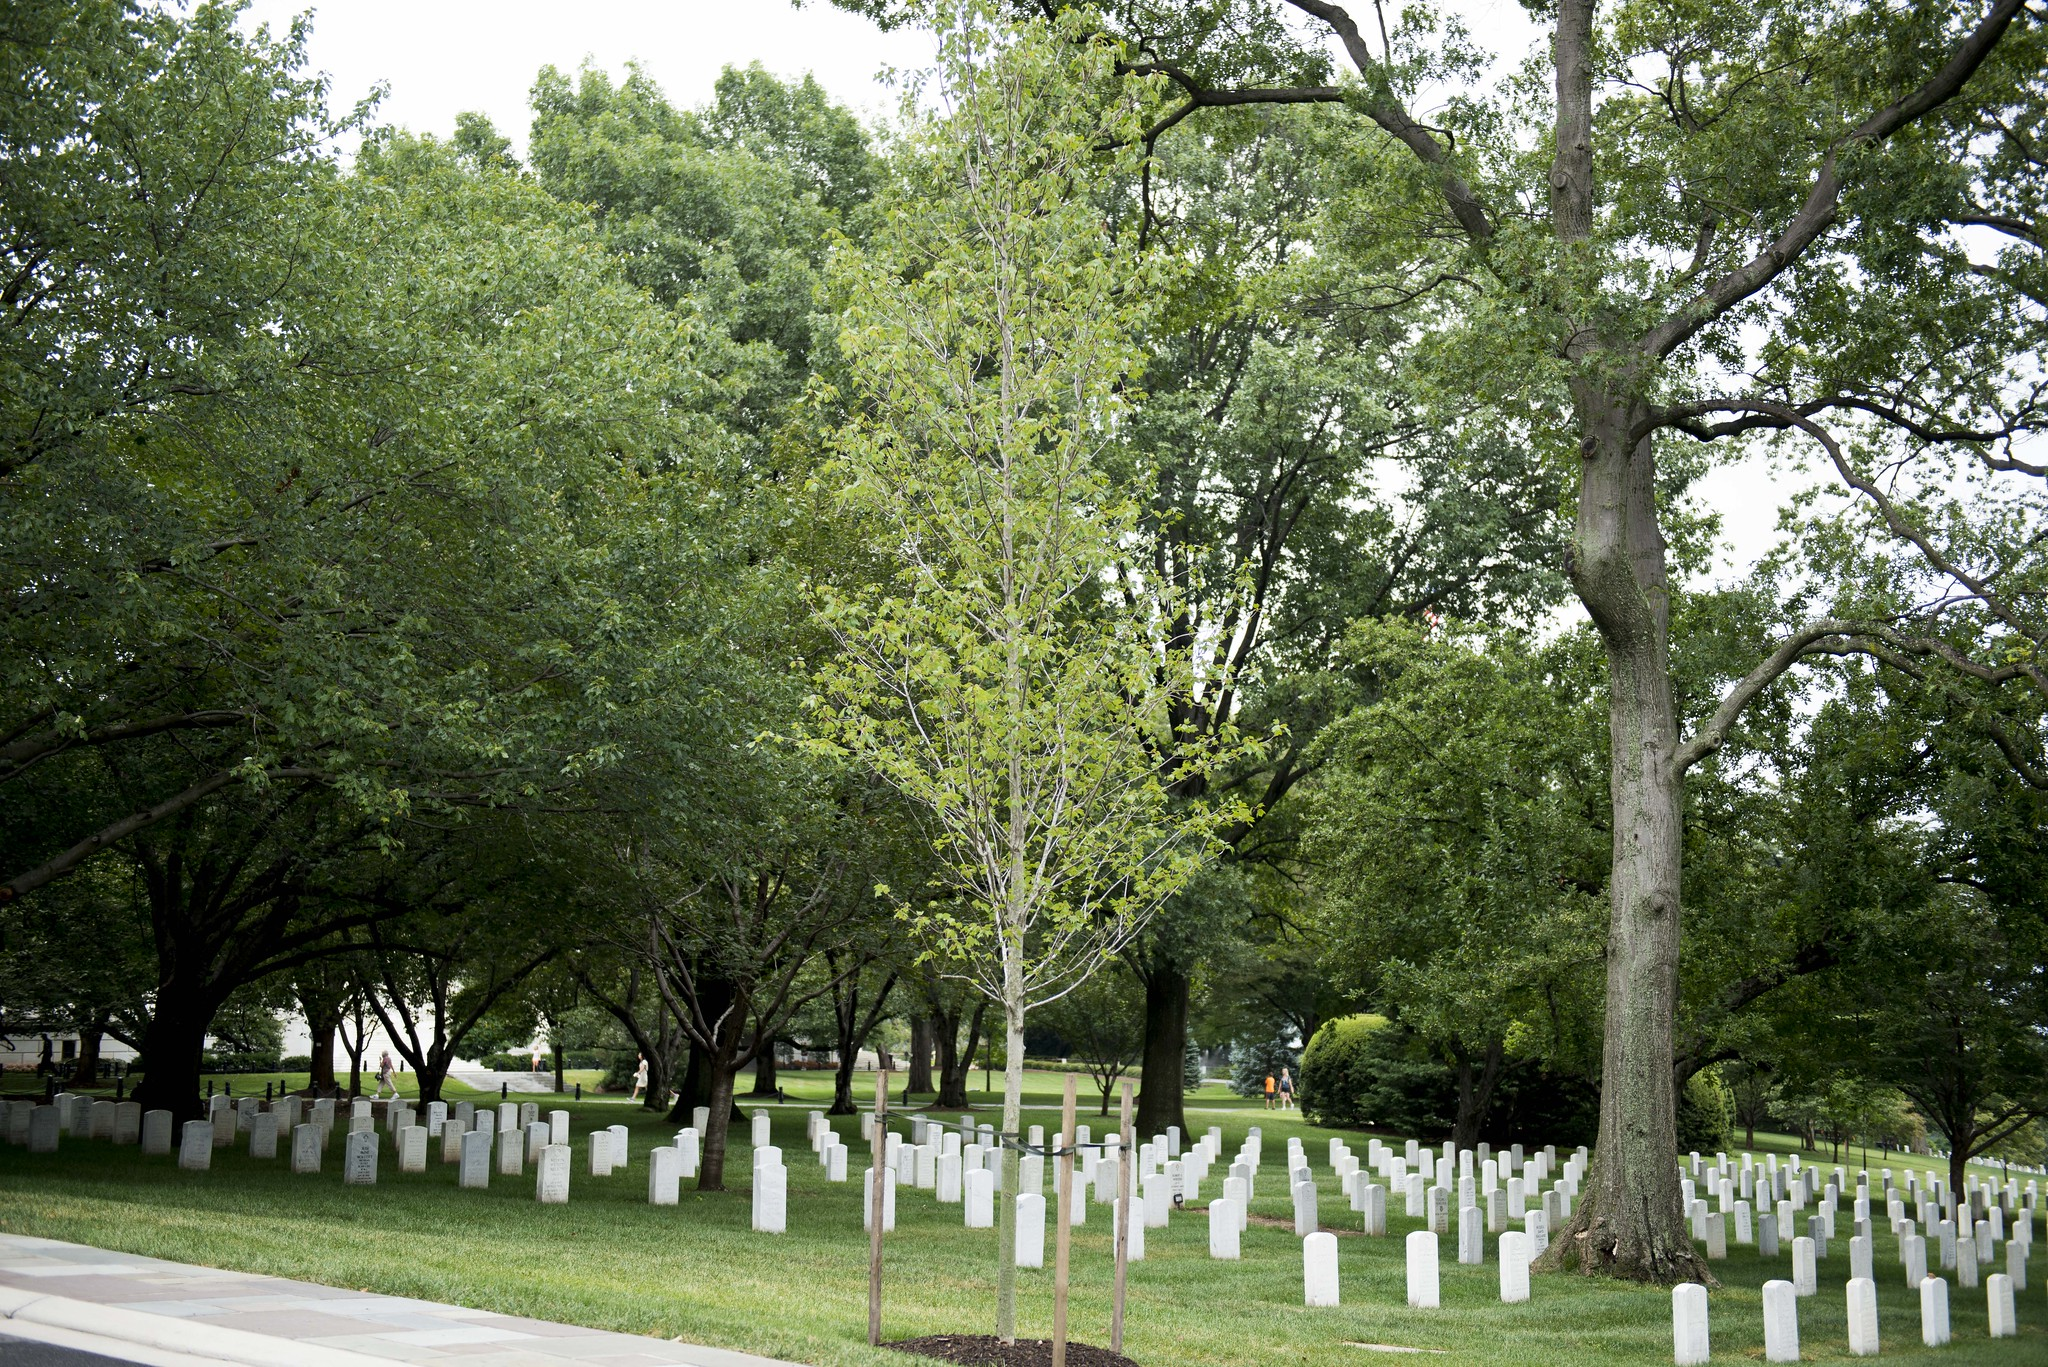 The Vietnam Helicopter Pilots Memorial Tree at Arlington National Cemetery